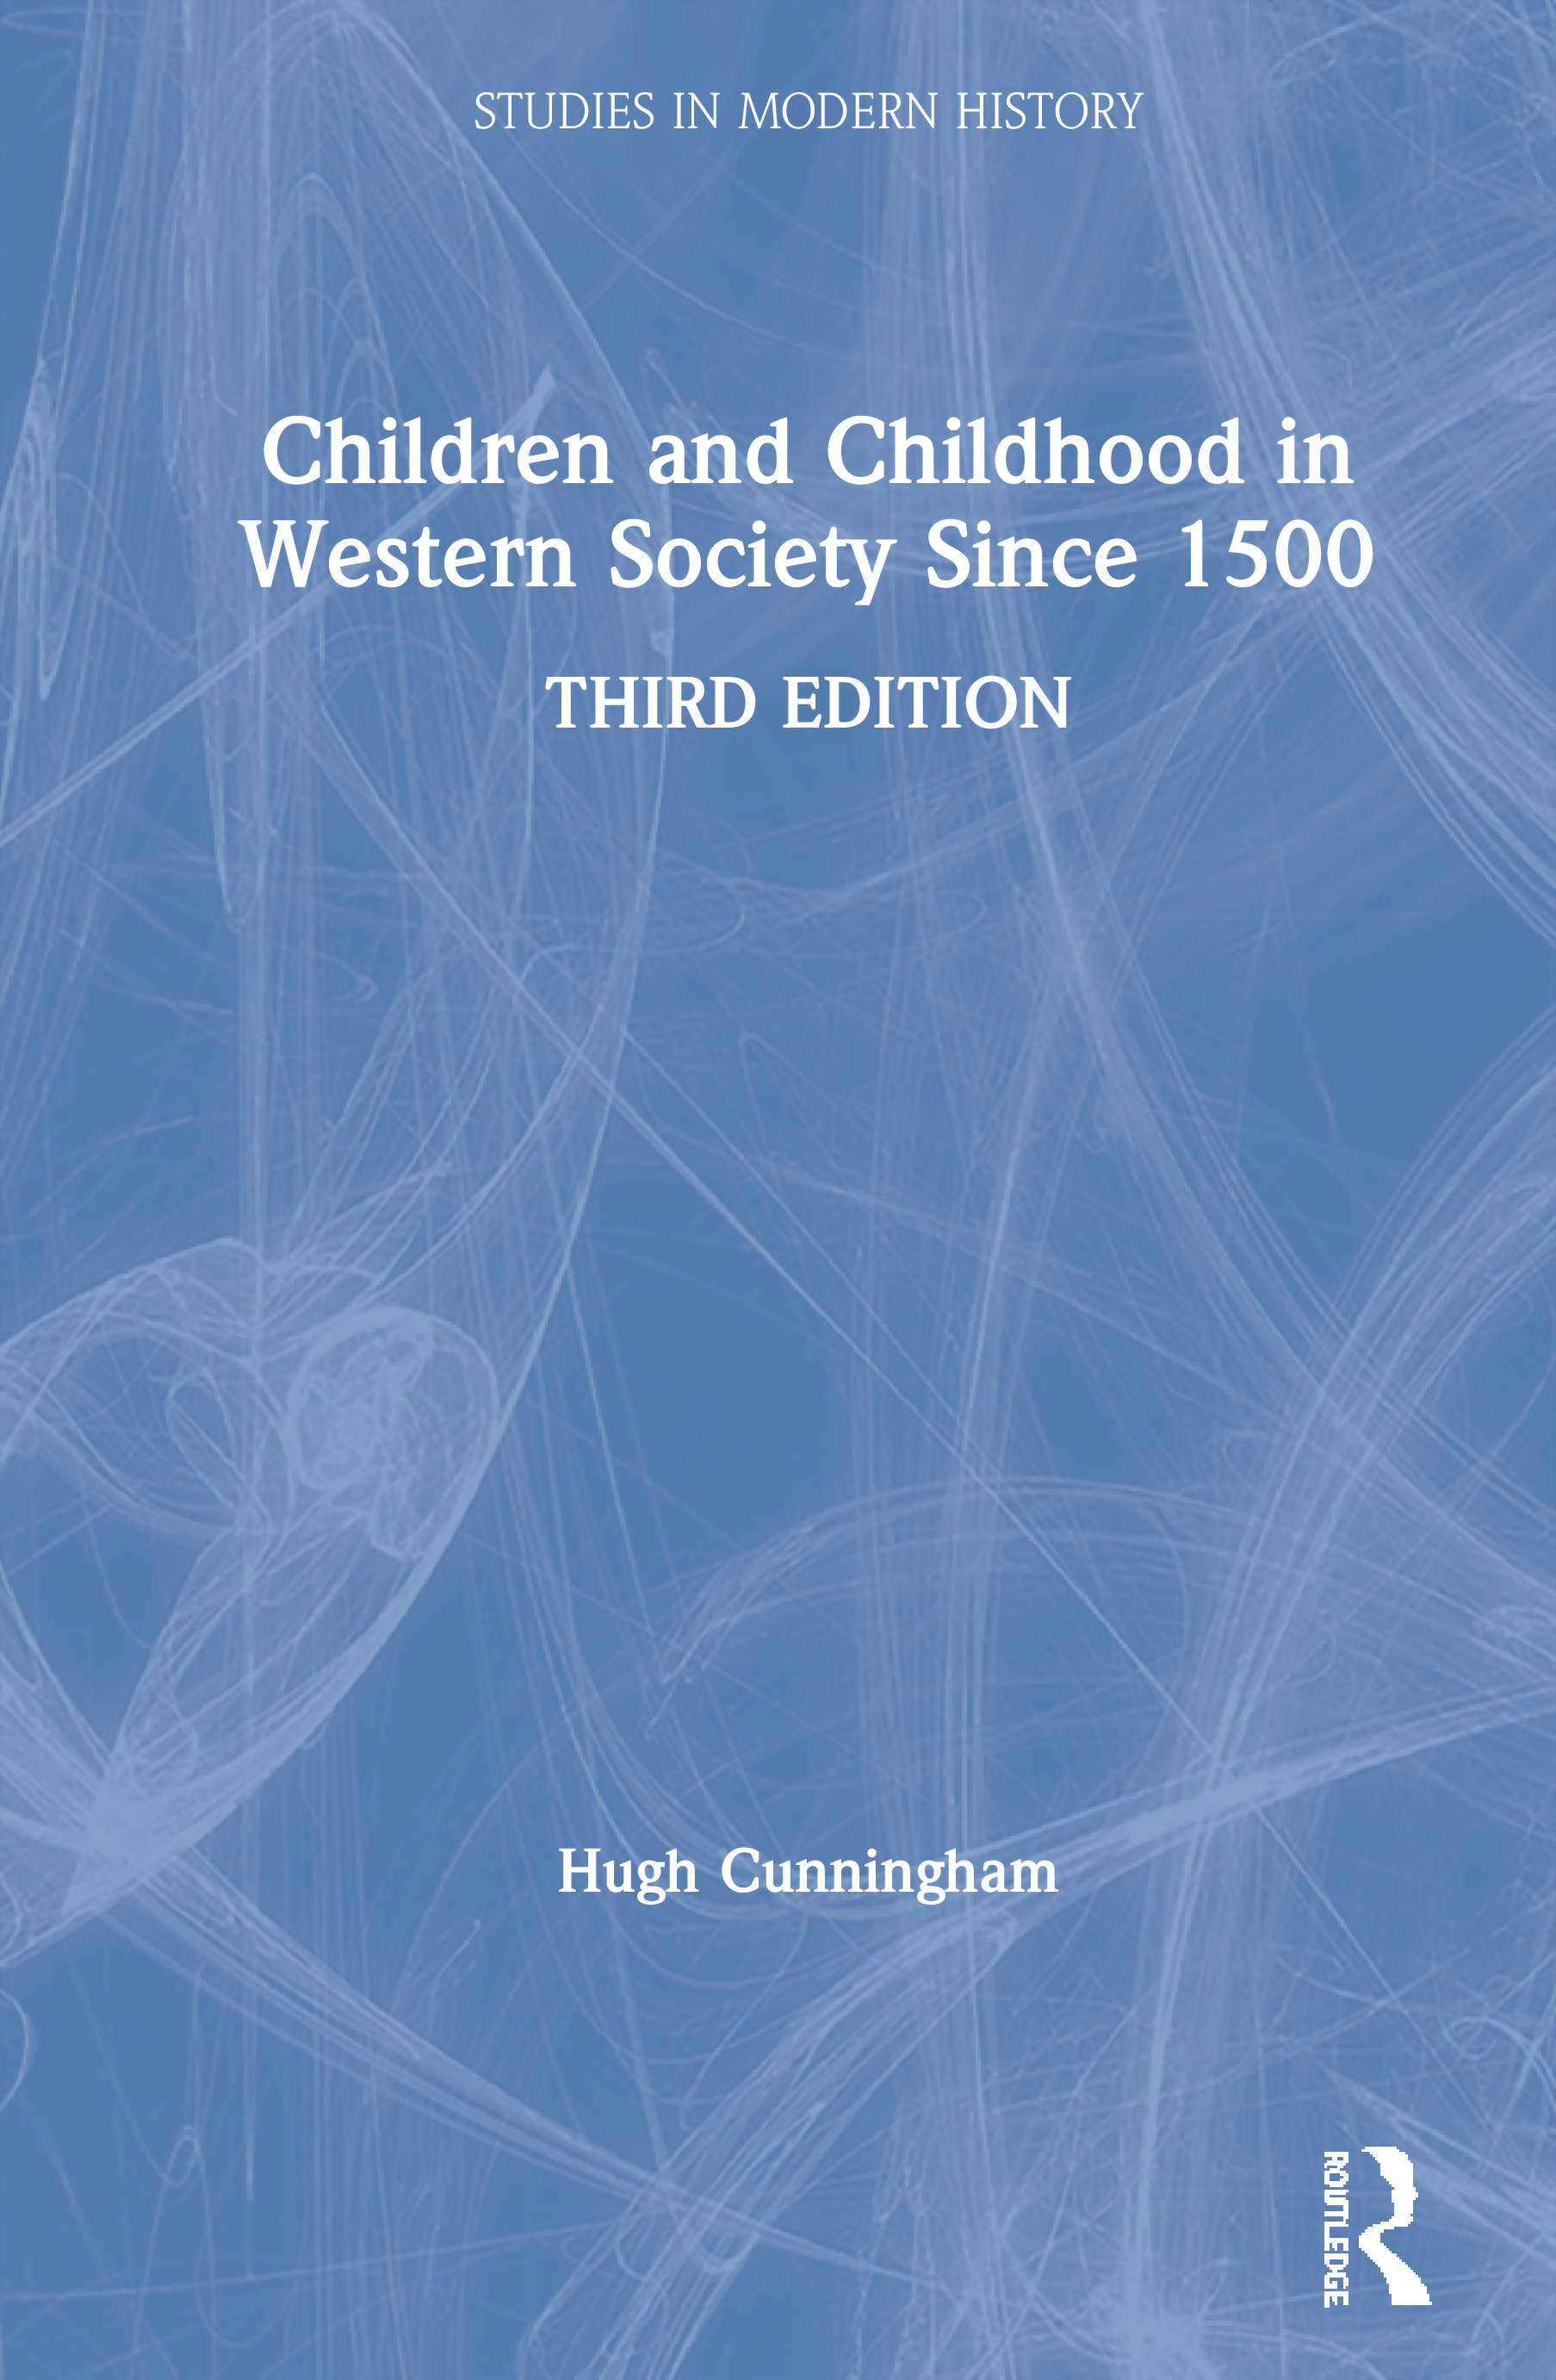 Children and Childhood in Western Society Since 1500 book cover